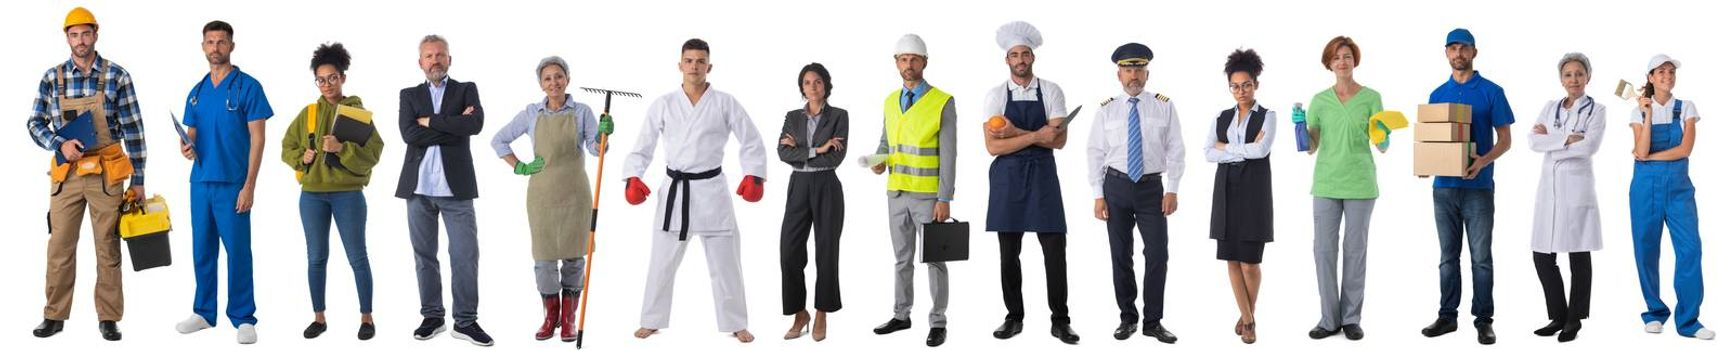 Full length portrait of group of people representing diverse professions of business, medicine, construction industry